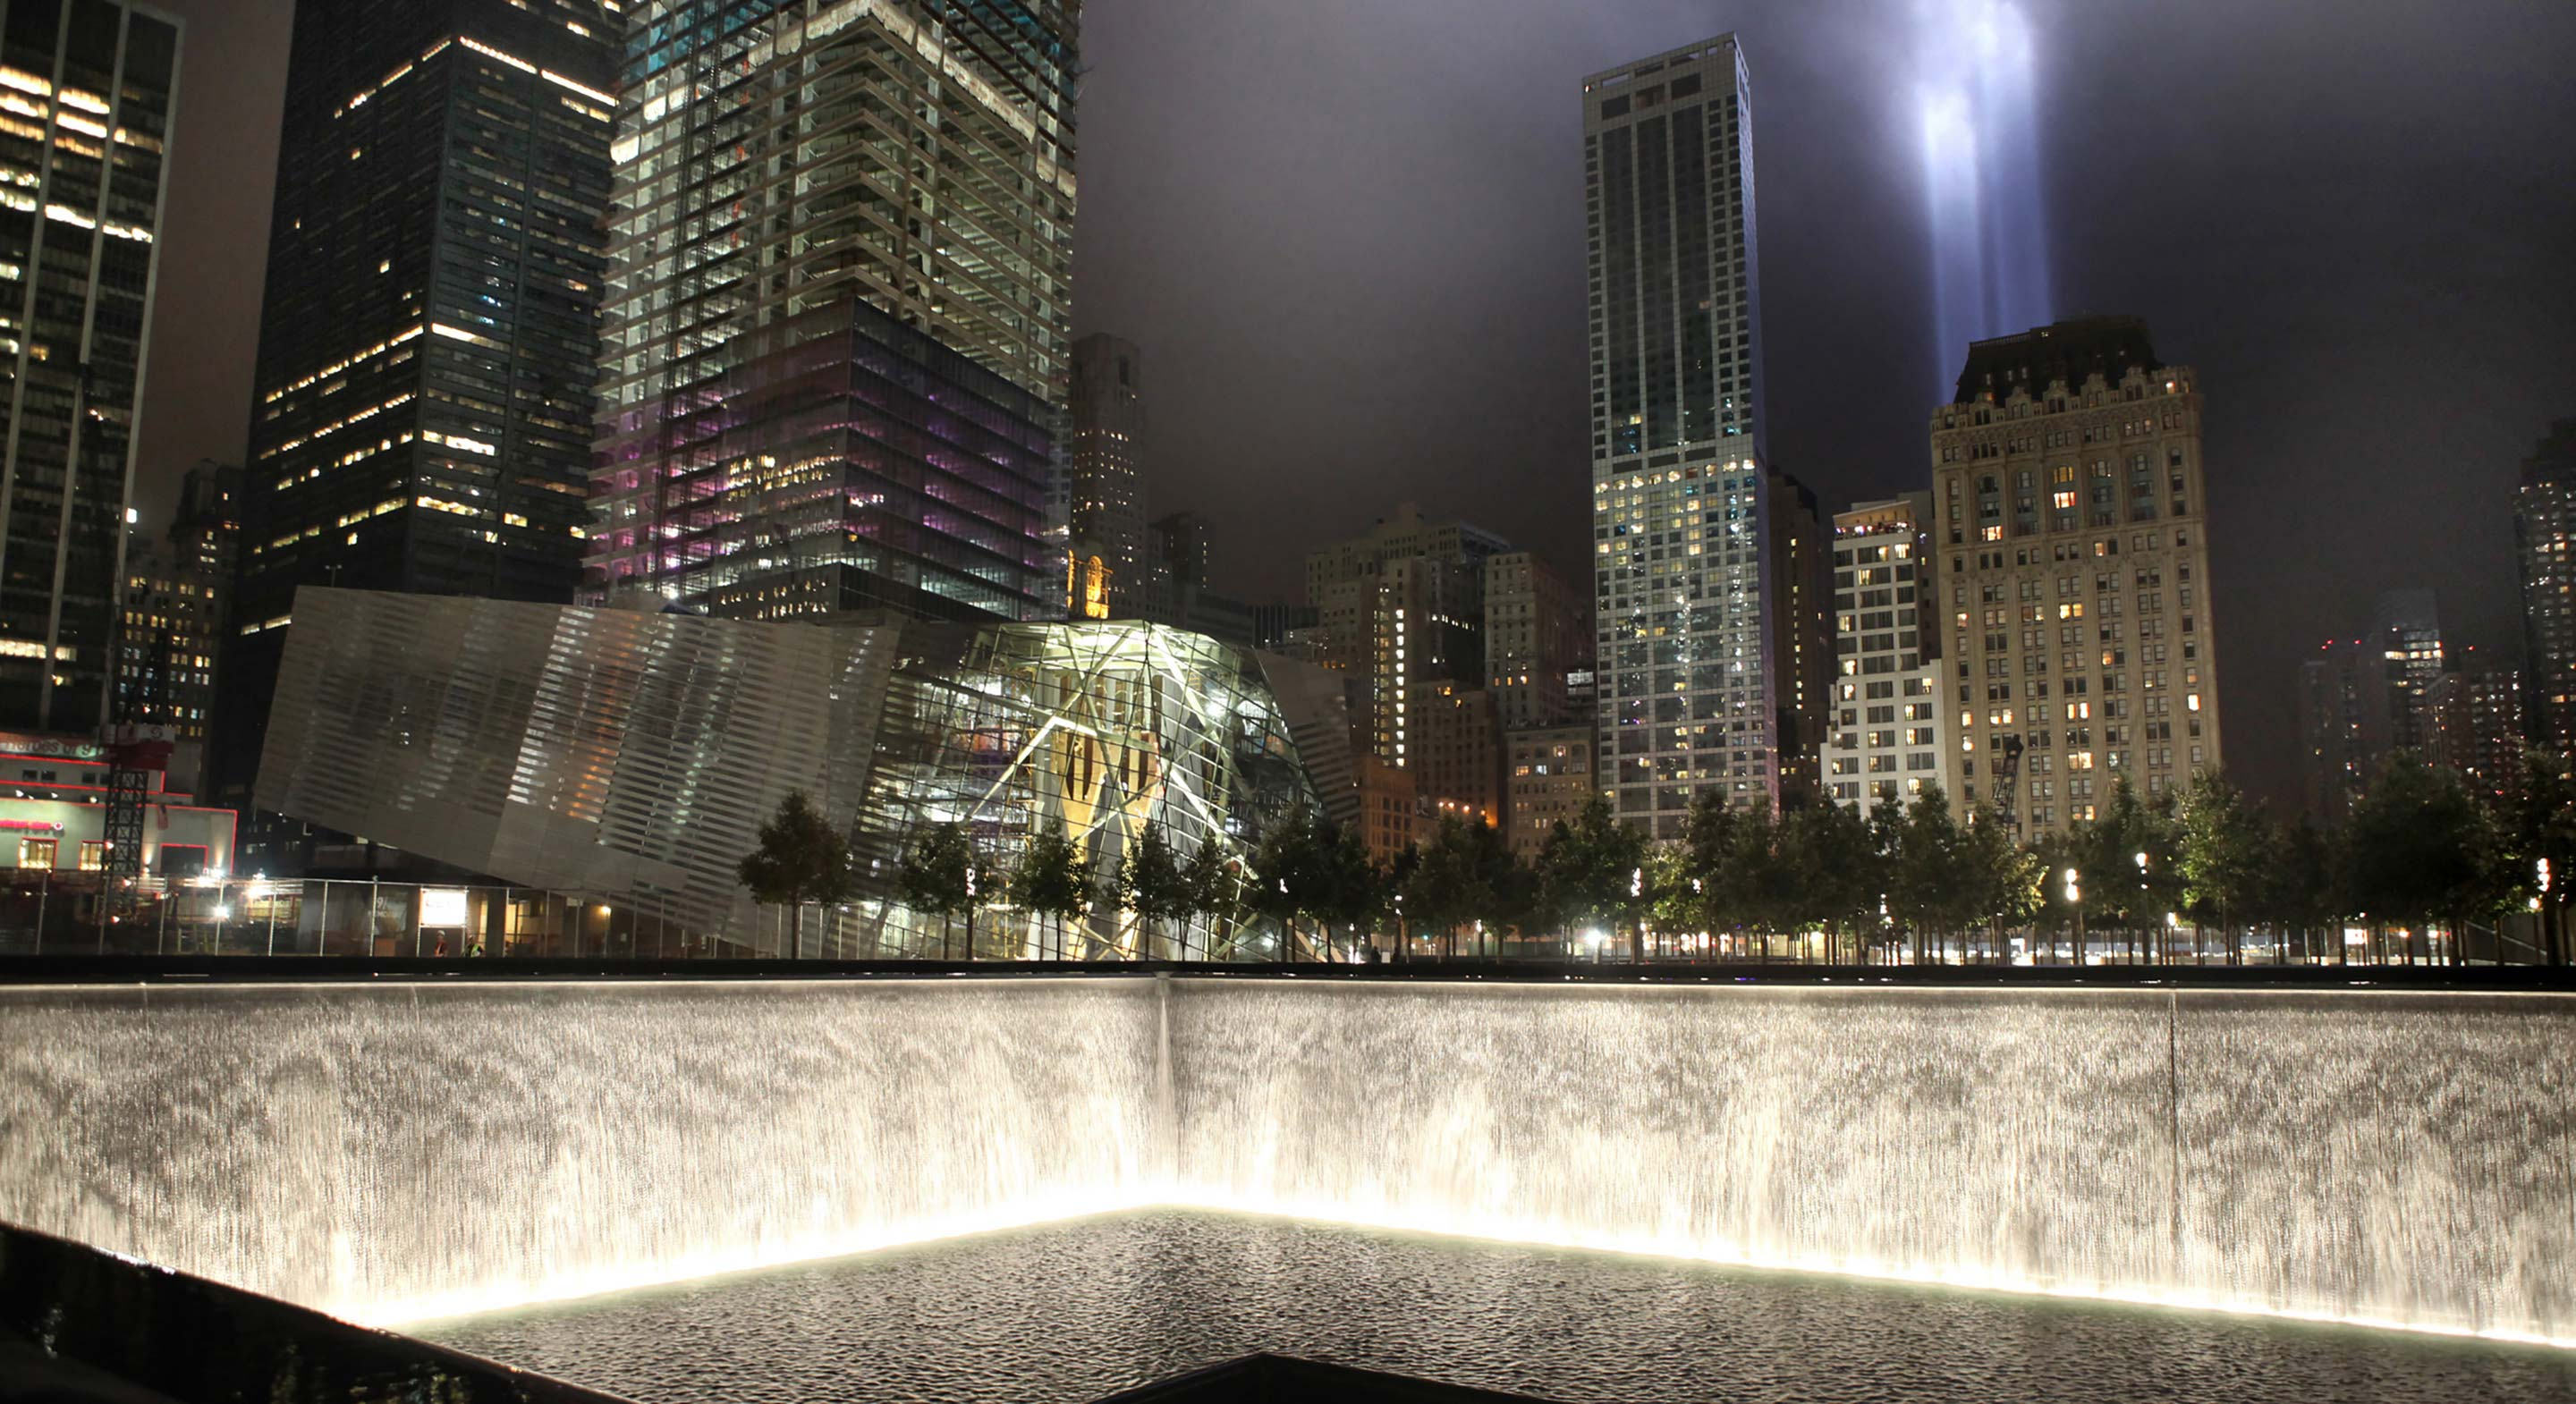 Reflecting Absense, September 11 Memorial at Night